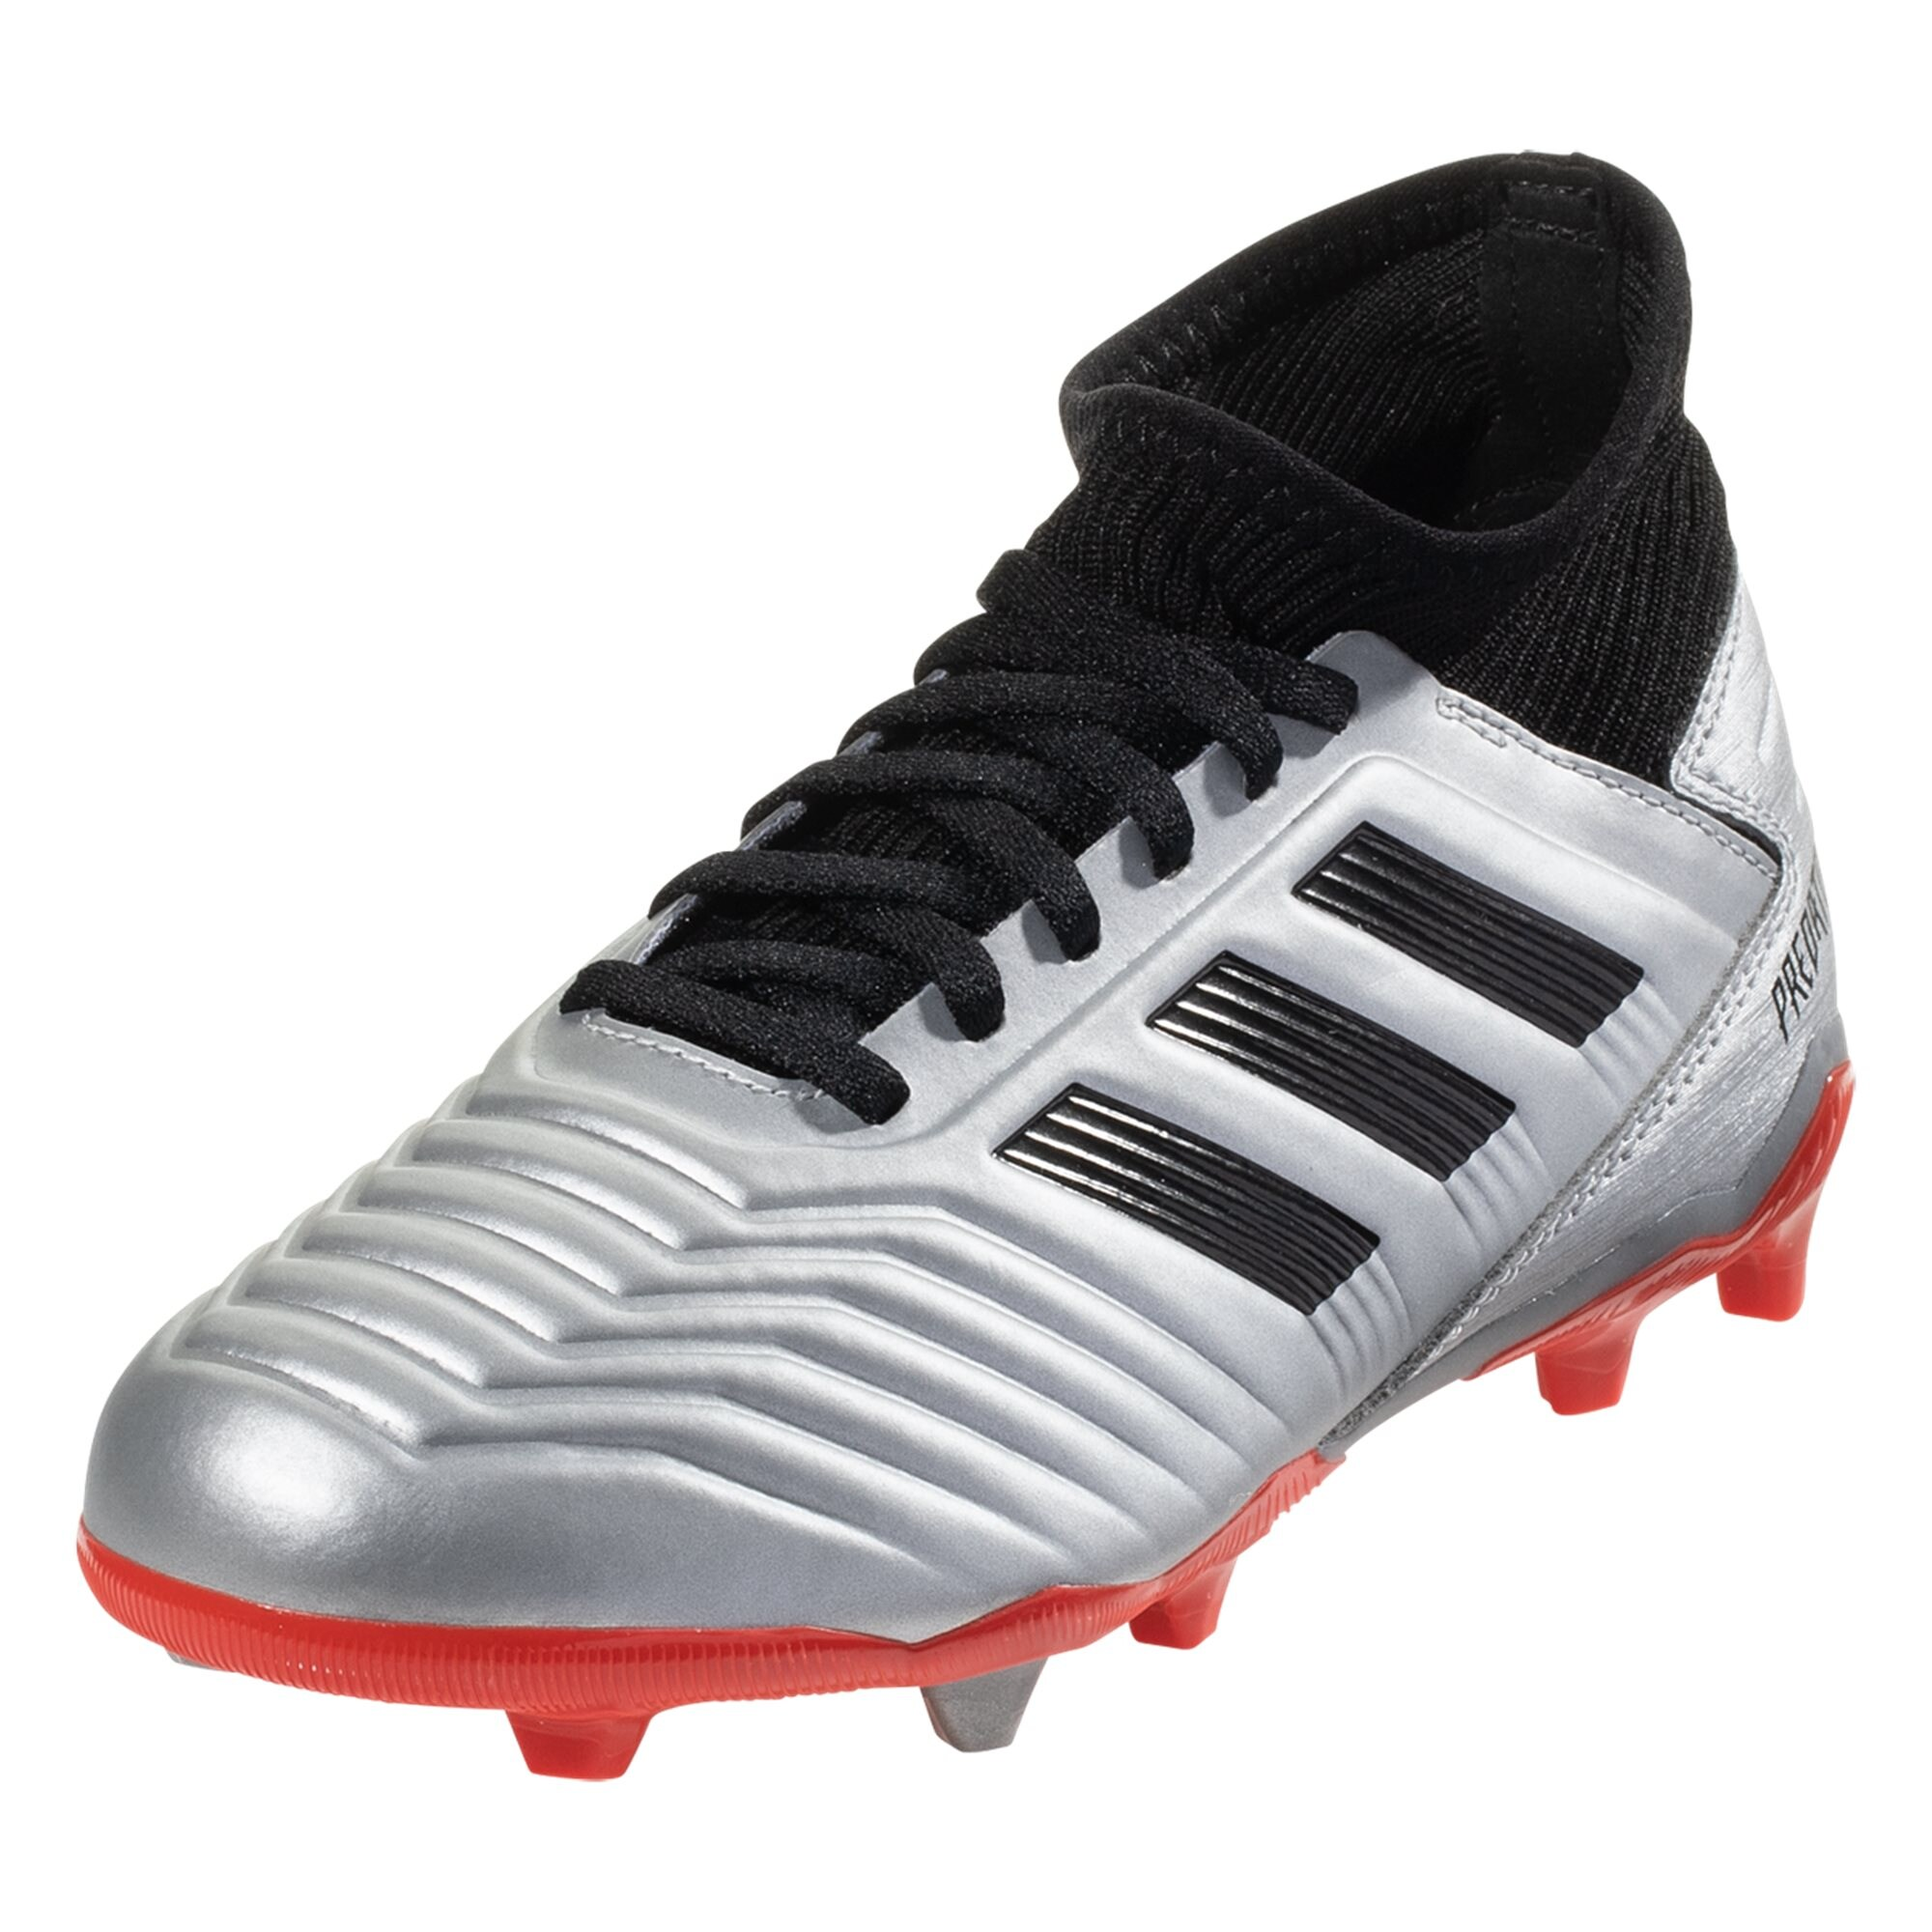 adidas Predator 19.3 FG Junior Soccer Cleat - Metallic Silver / Black / Hi-Res Red